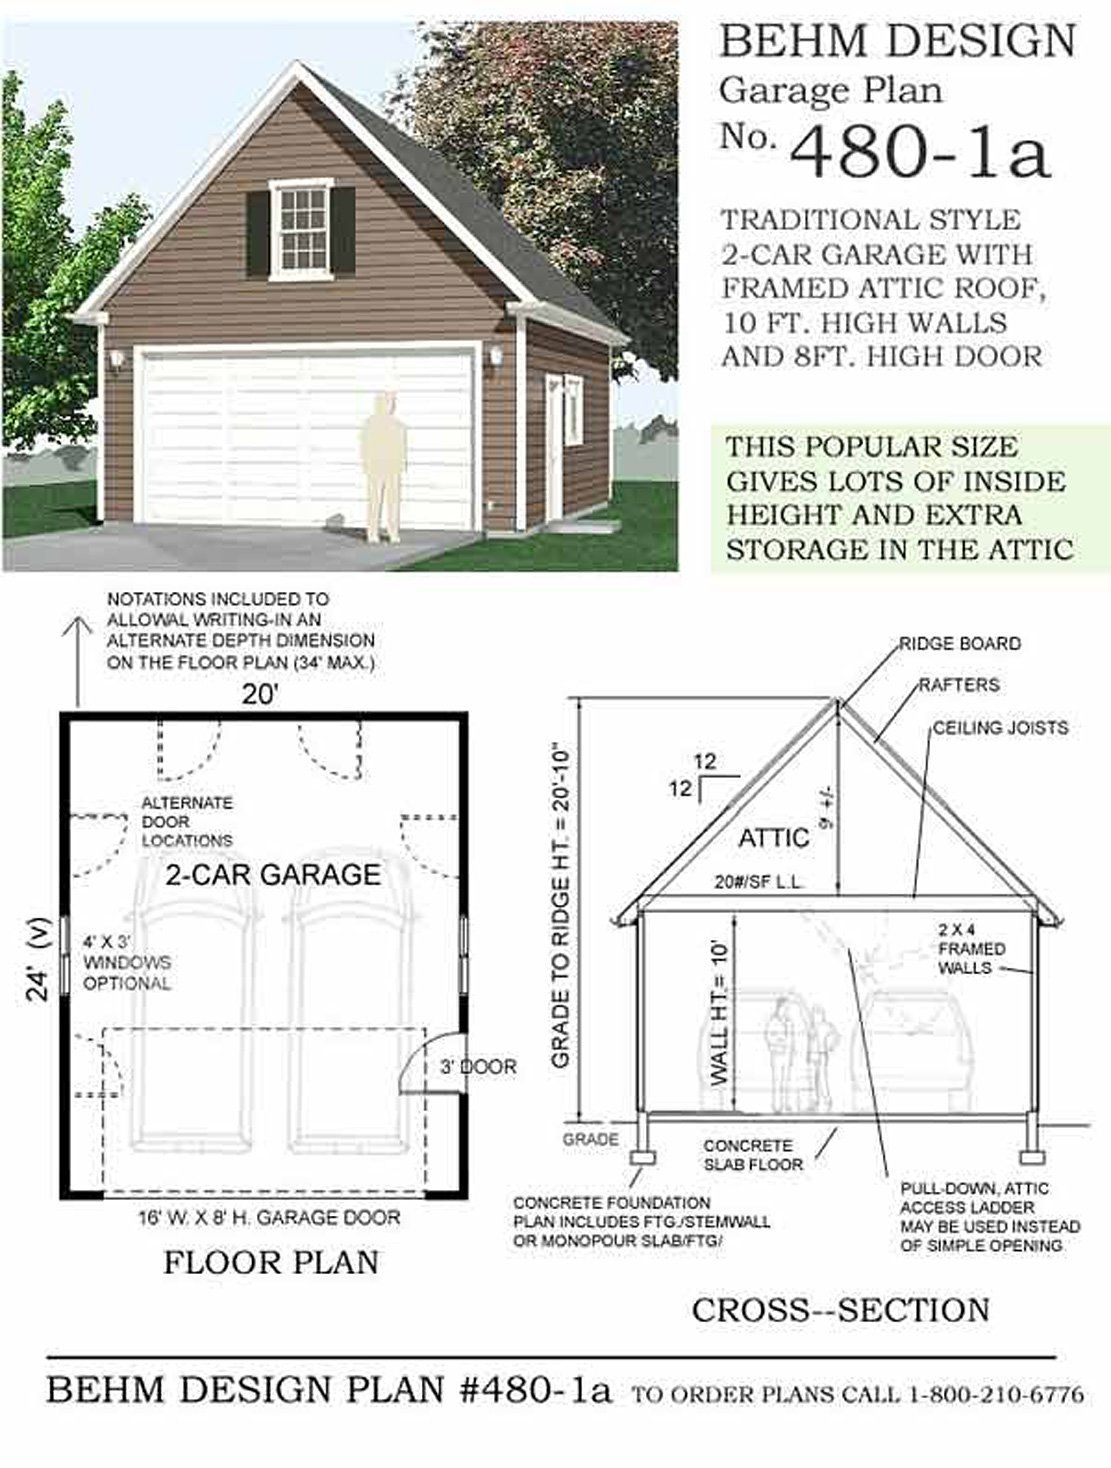 Detached Garage Plans on Man Cave Floor Plans